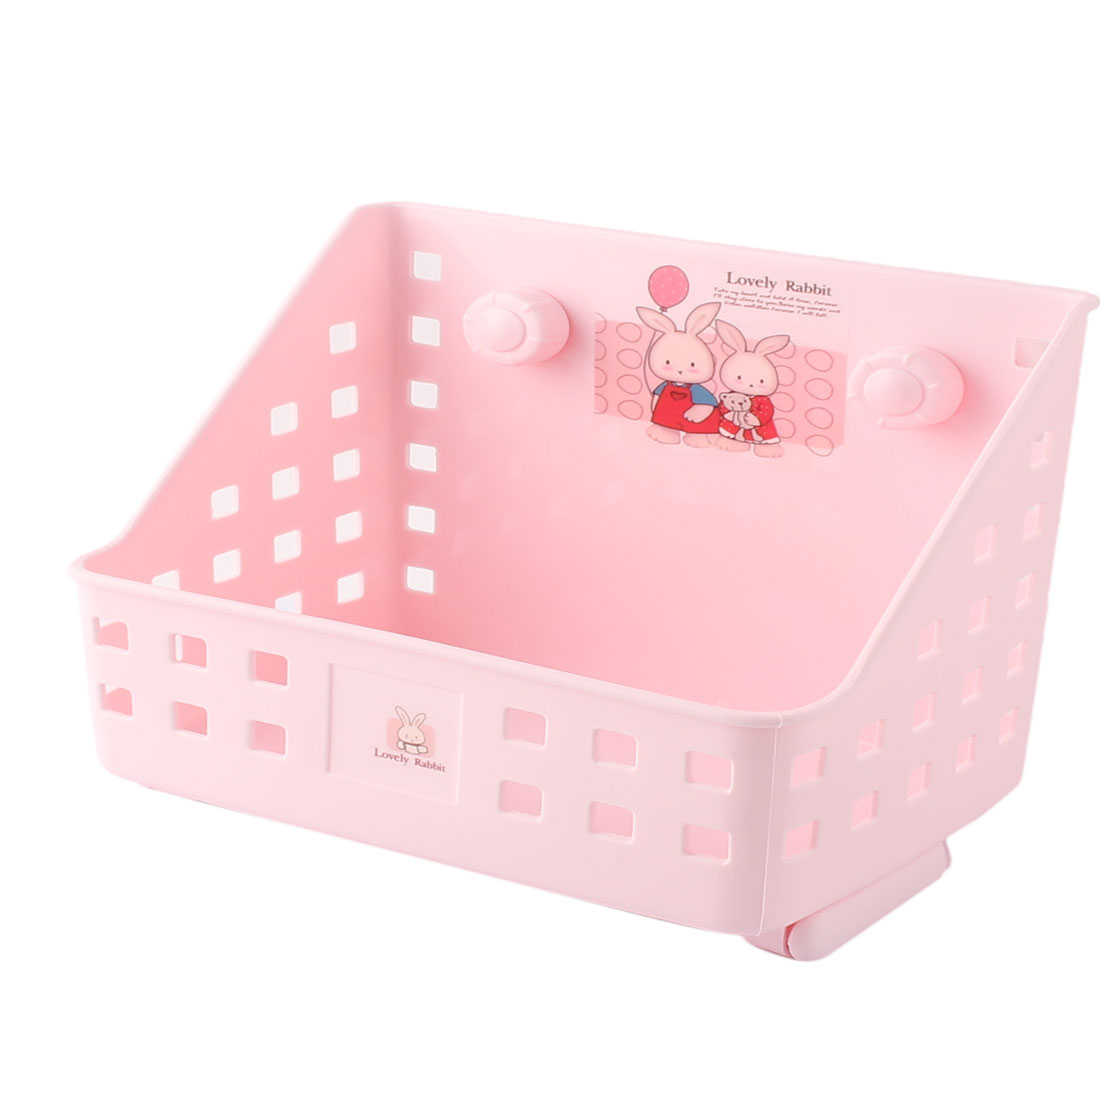 Home Office School Plastic Hollow Out Design Storage Basket Case Container Pink